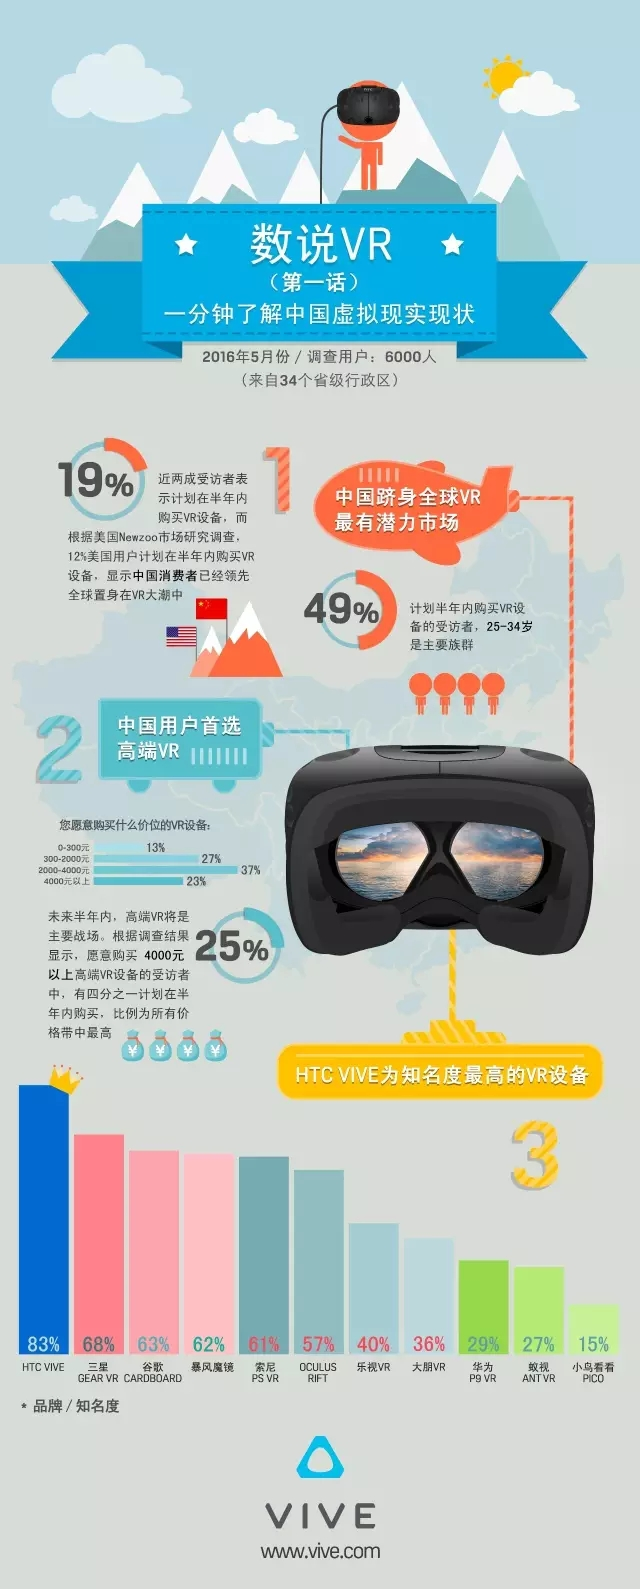 A picture of the current situation of China's VR virtual reality